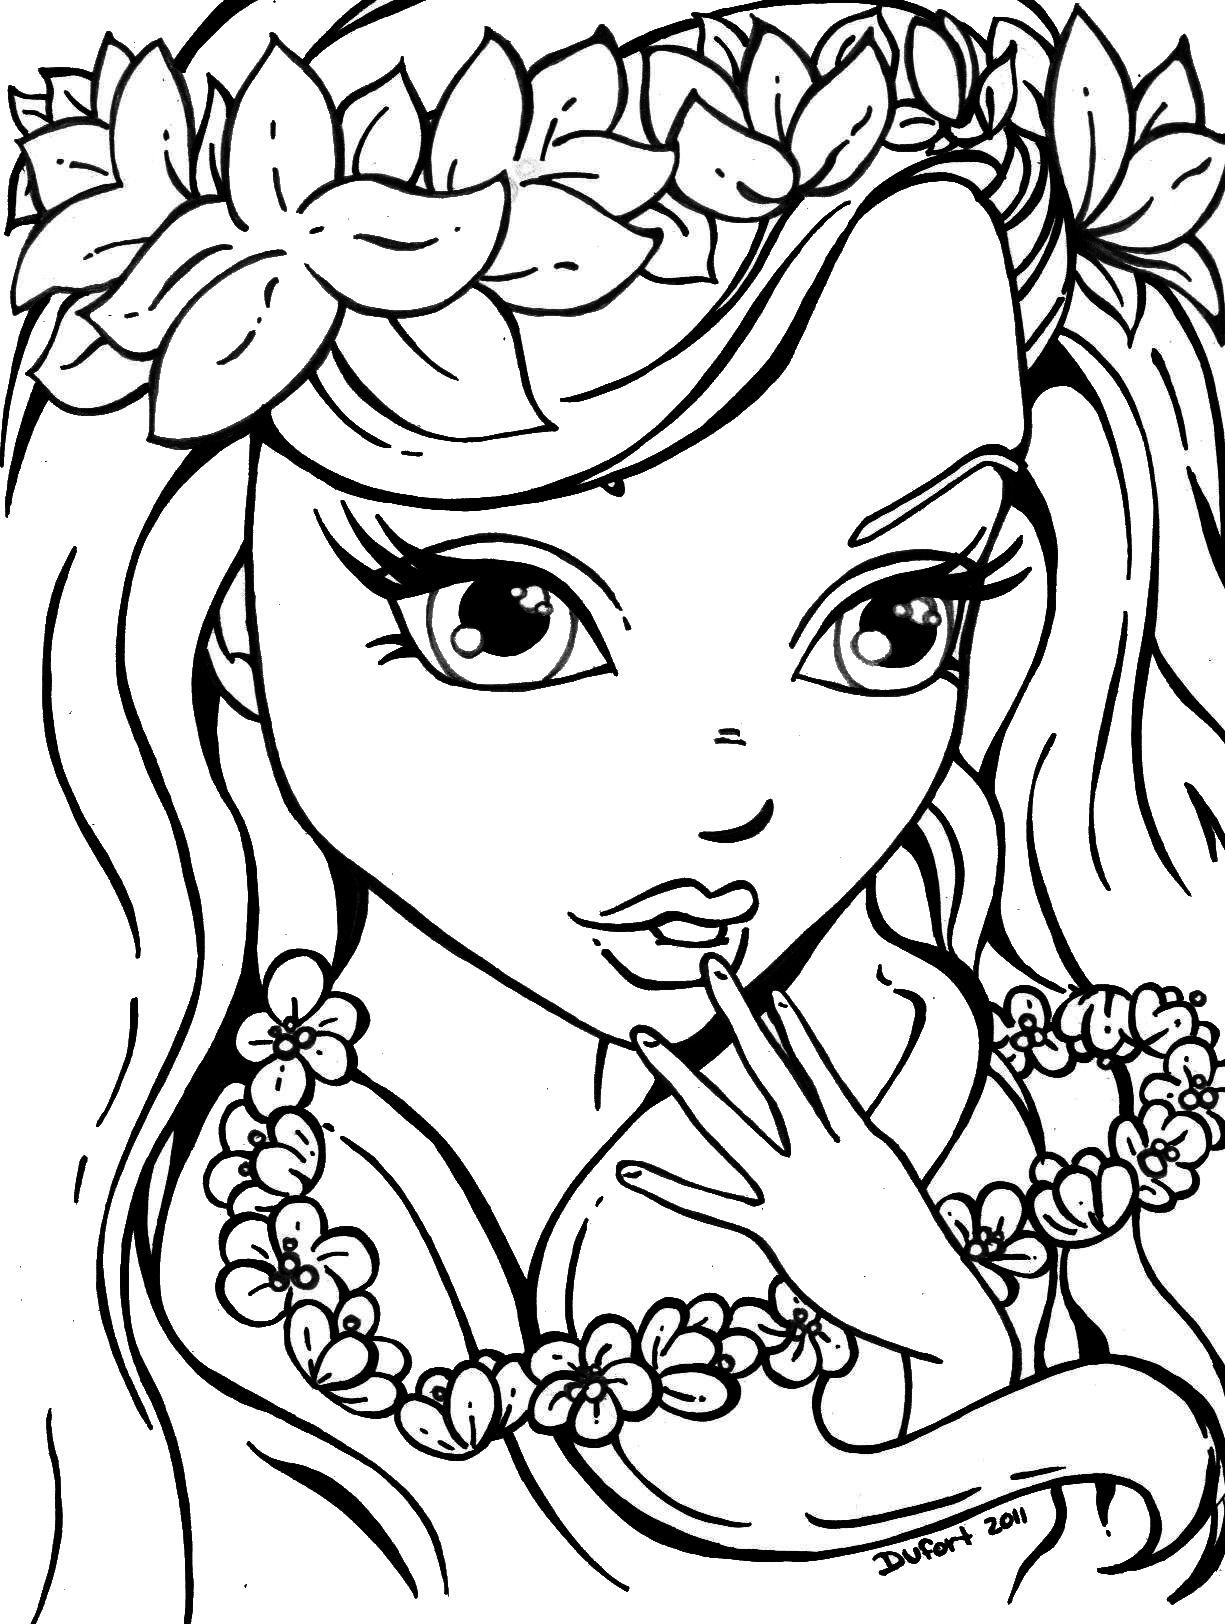 Coloring Ideas : 65 Marvelous Printable Coloring Sheets For Teens - Free Printable Coloring Pages For Teens